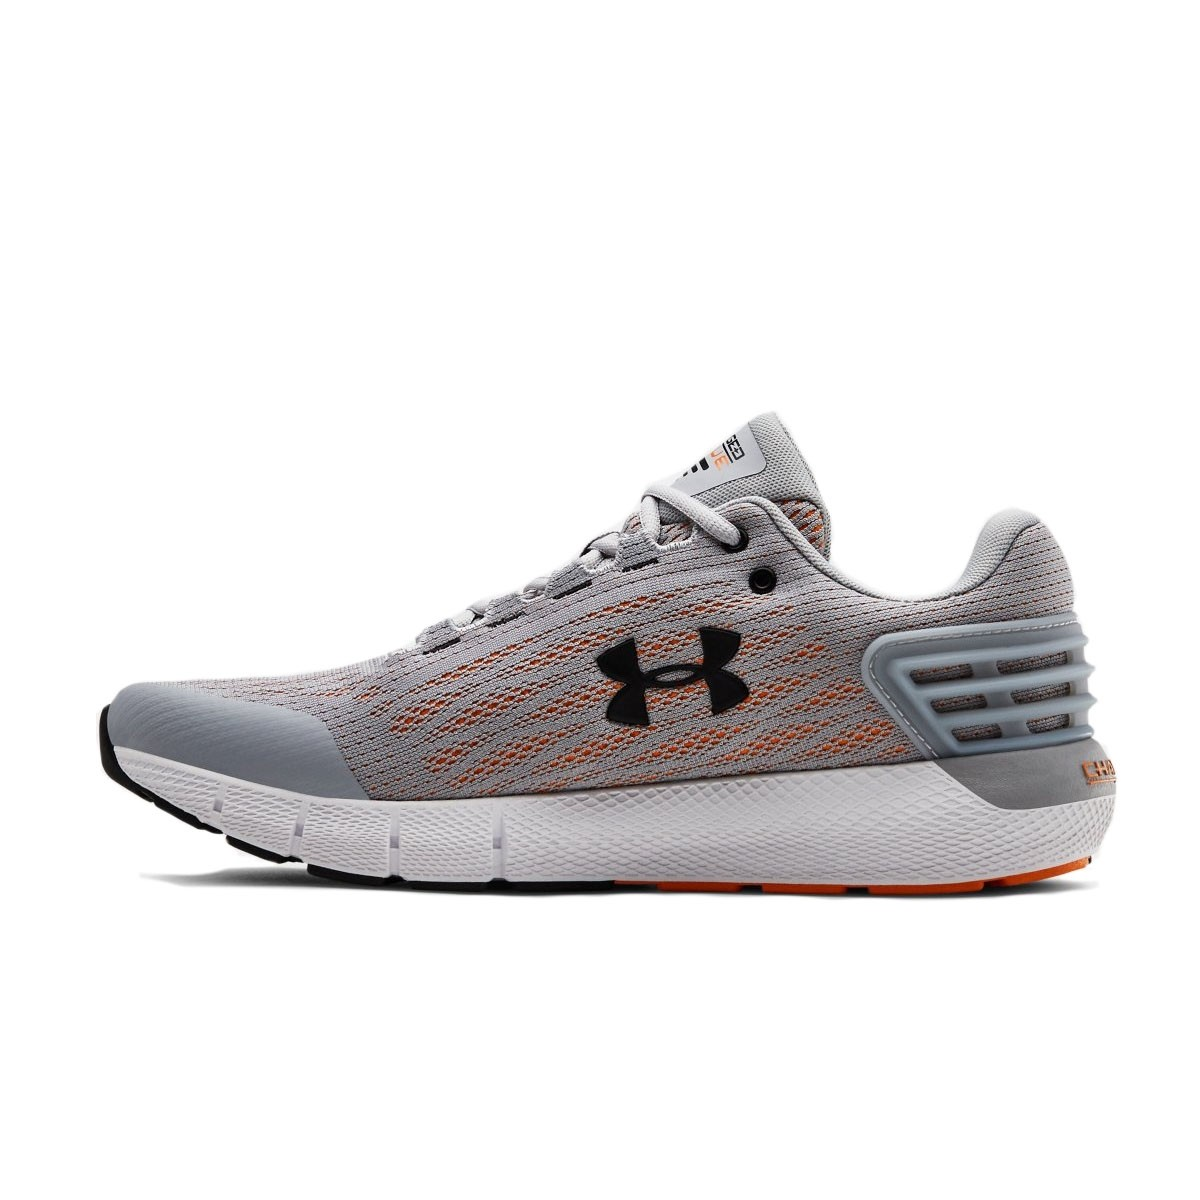 Under Armour Charged Rogue 'Orange Fade'-3021225-102